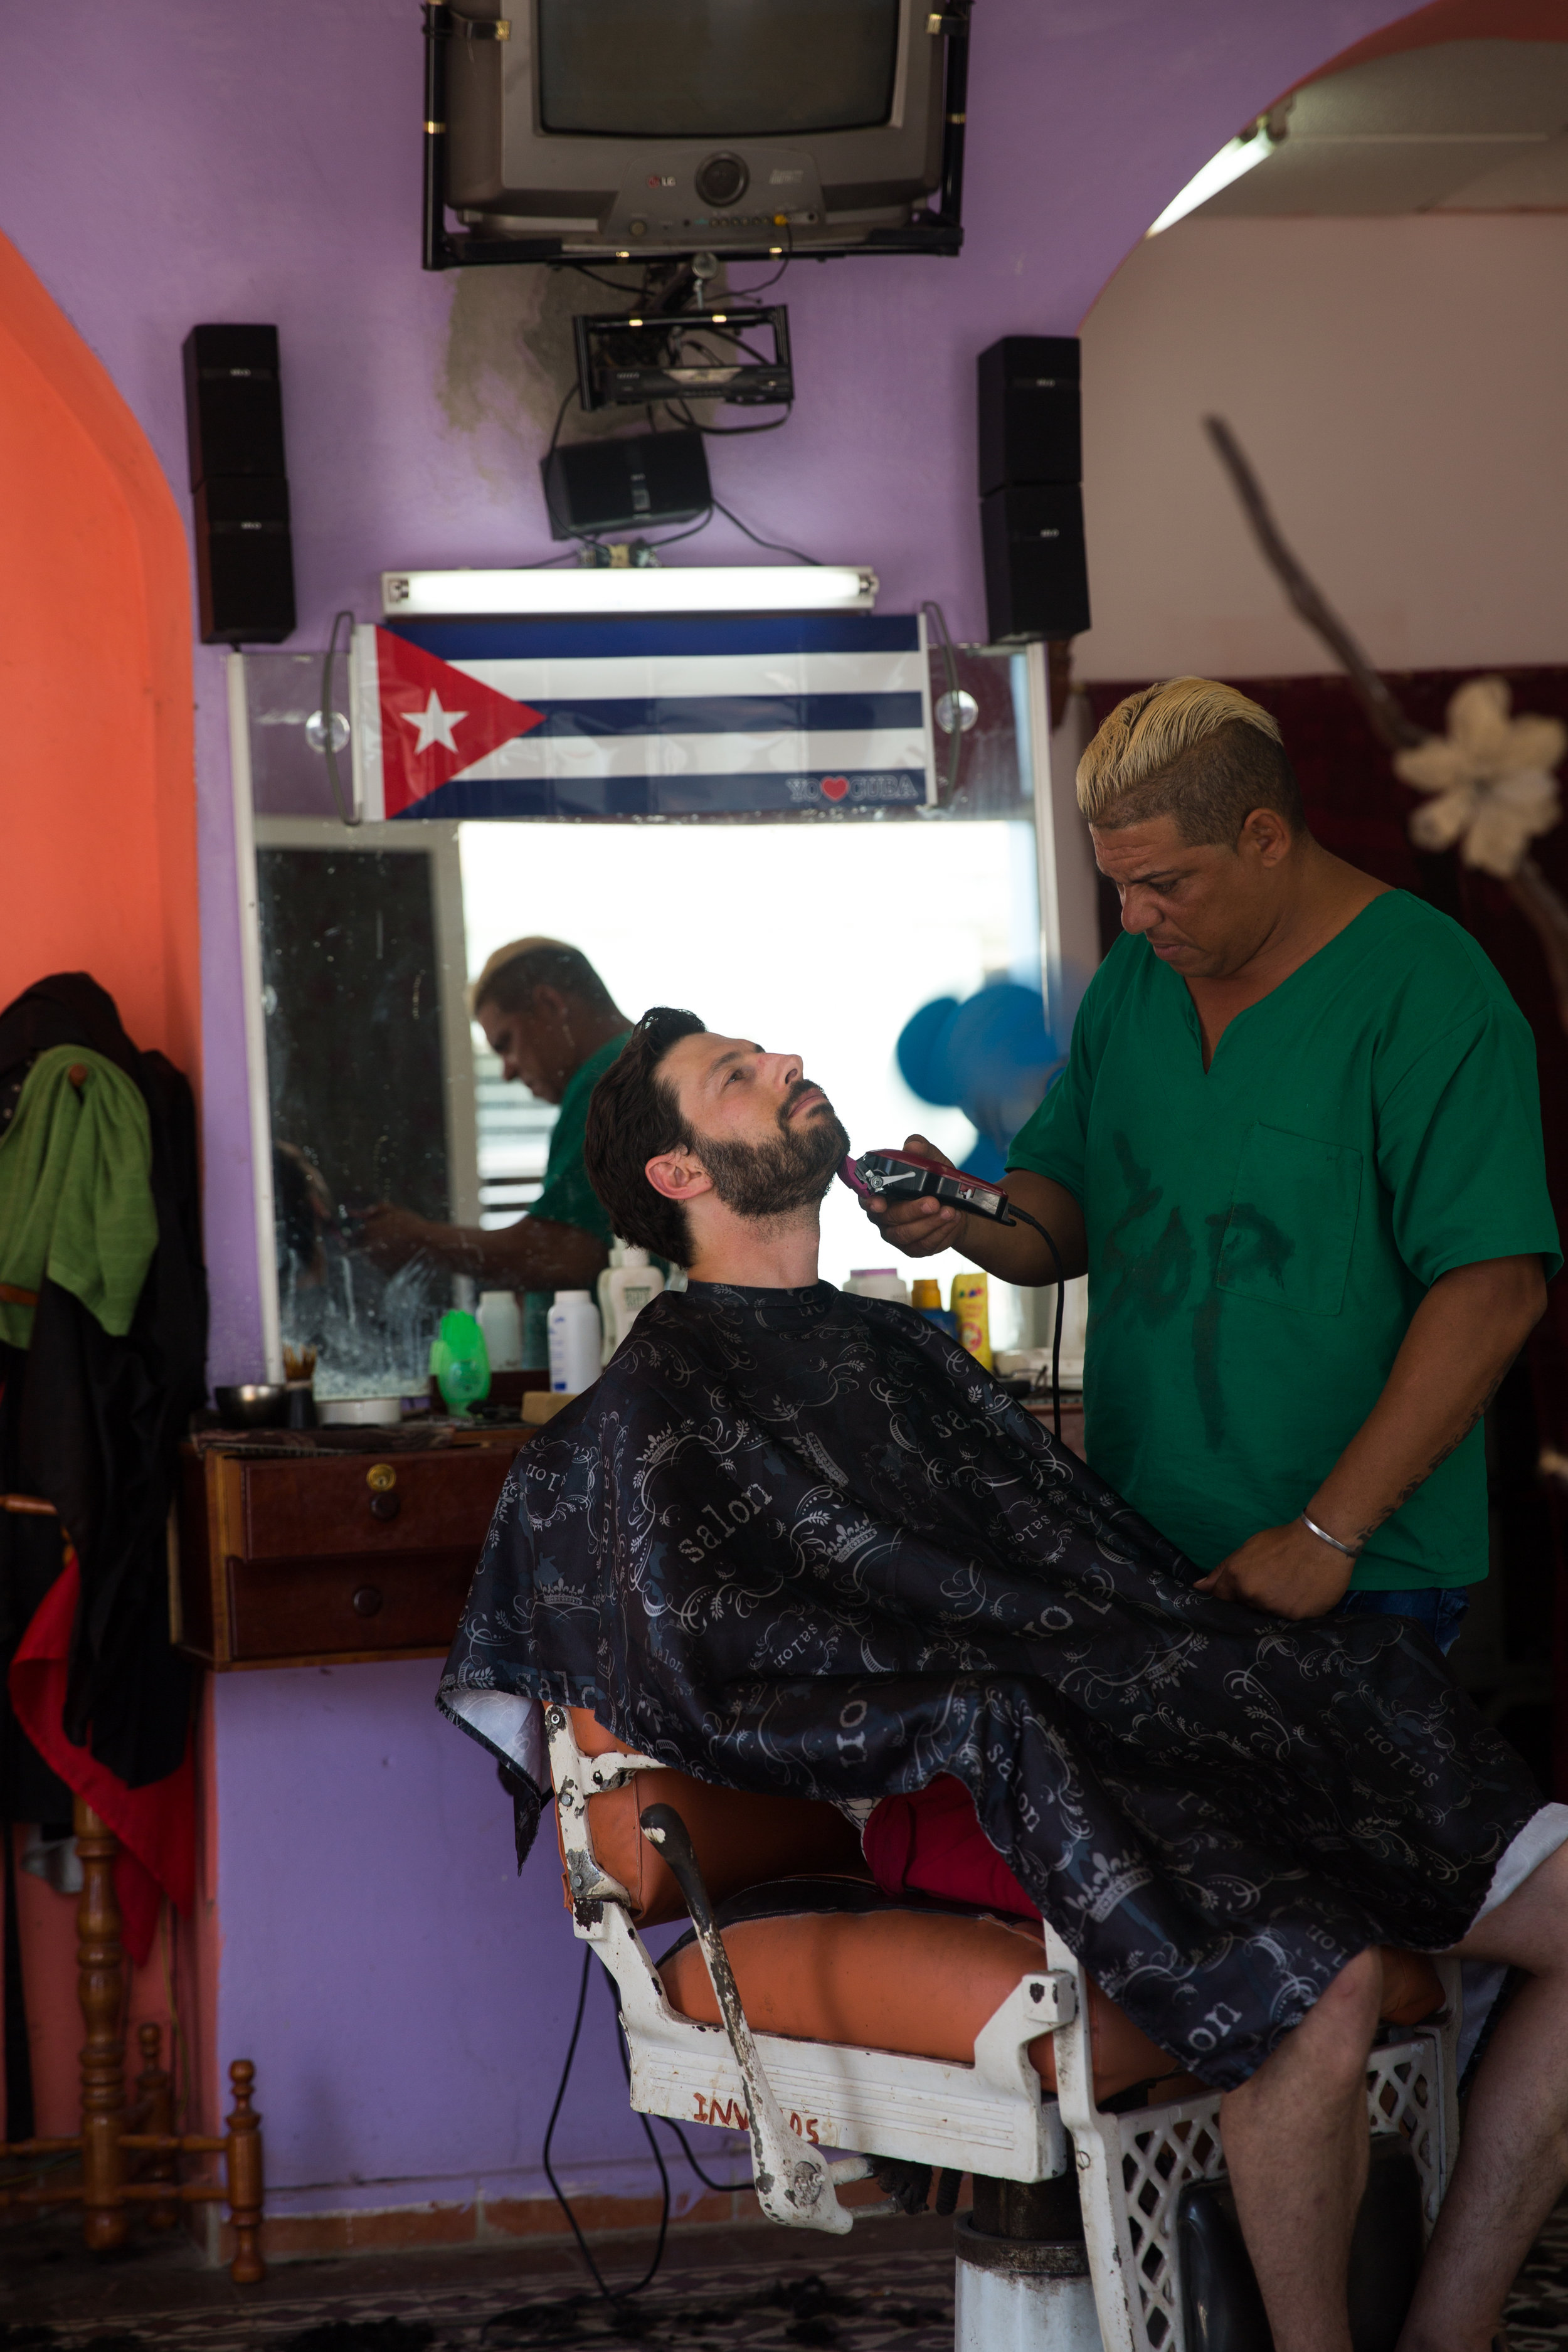 Most of the natives in Cuba rocked a greaser cut with shaved sides, but Dan stuck to his El Papa look.